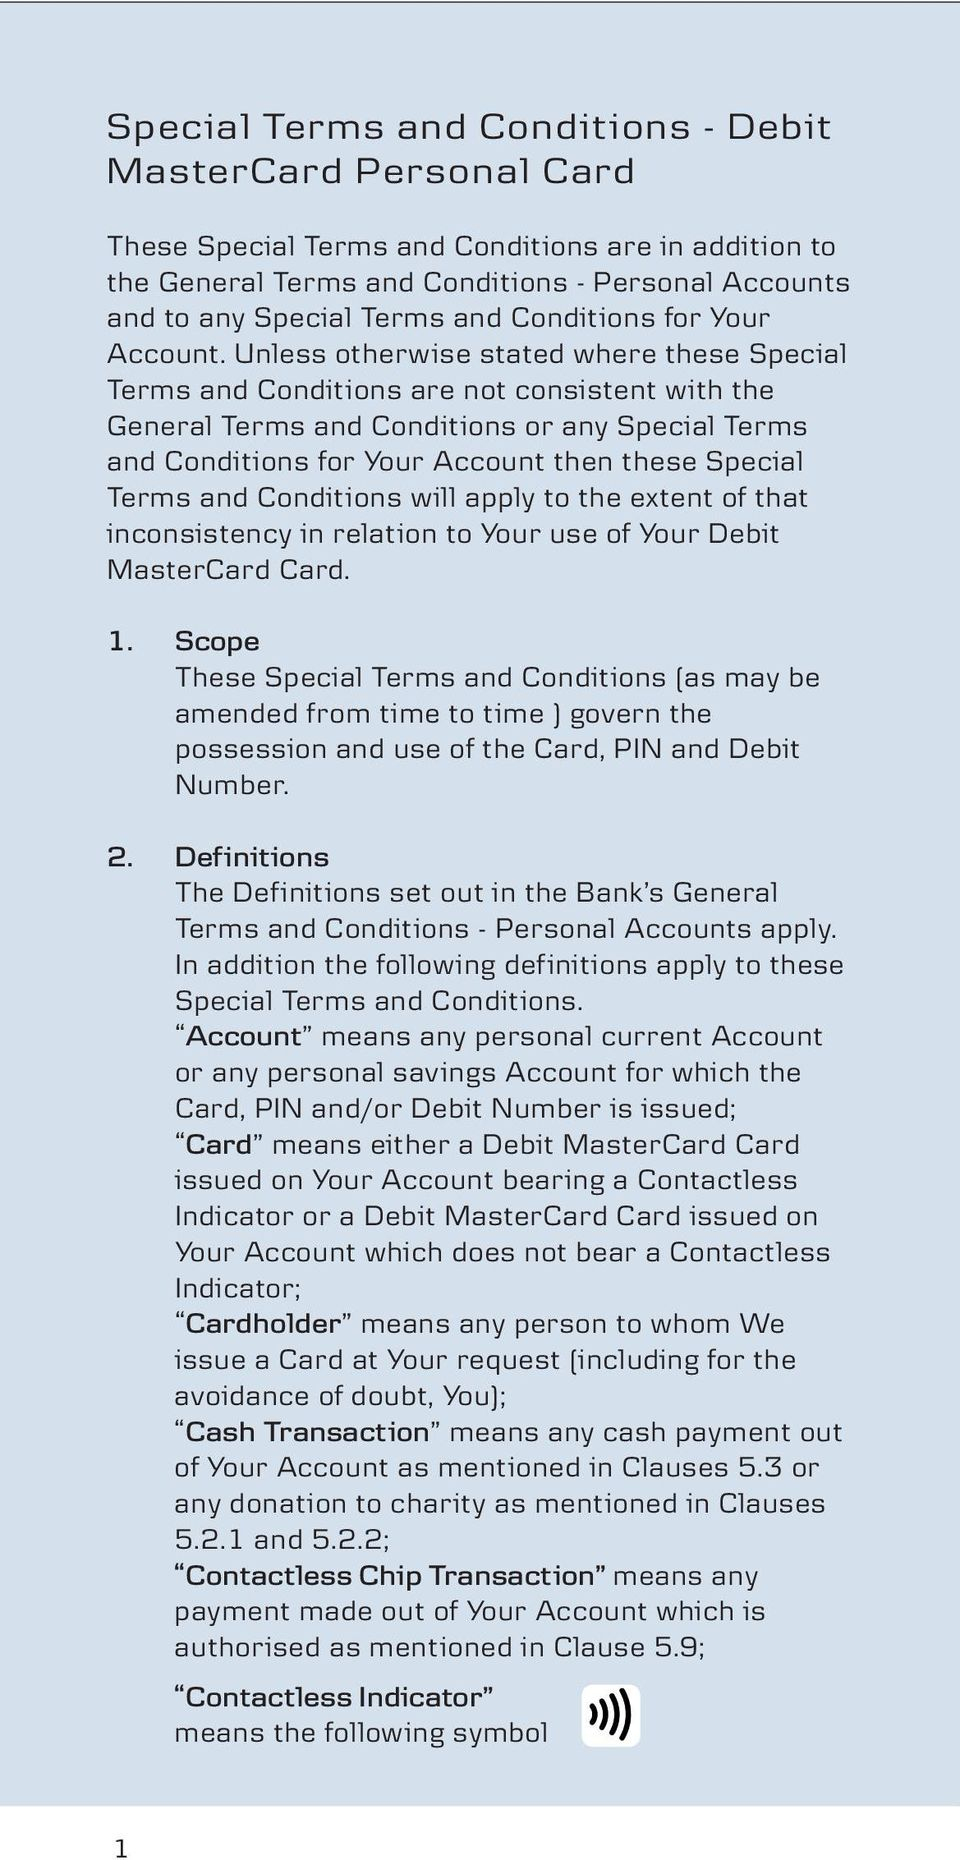 Unless otherwise stated where these Special Terms and Conditions are not consistent with the General Terms and Conditions or any Special Terms and Conditions for Your Account then these Special Terms